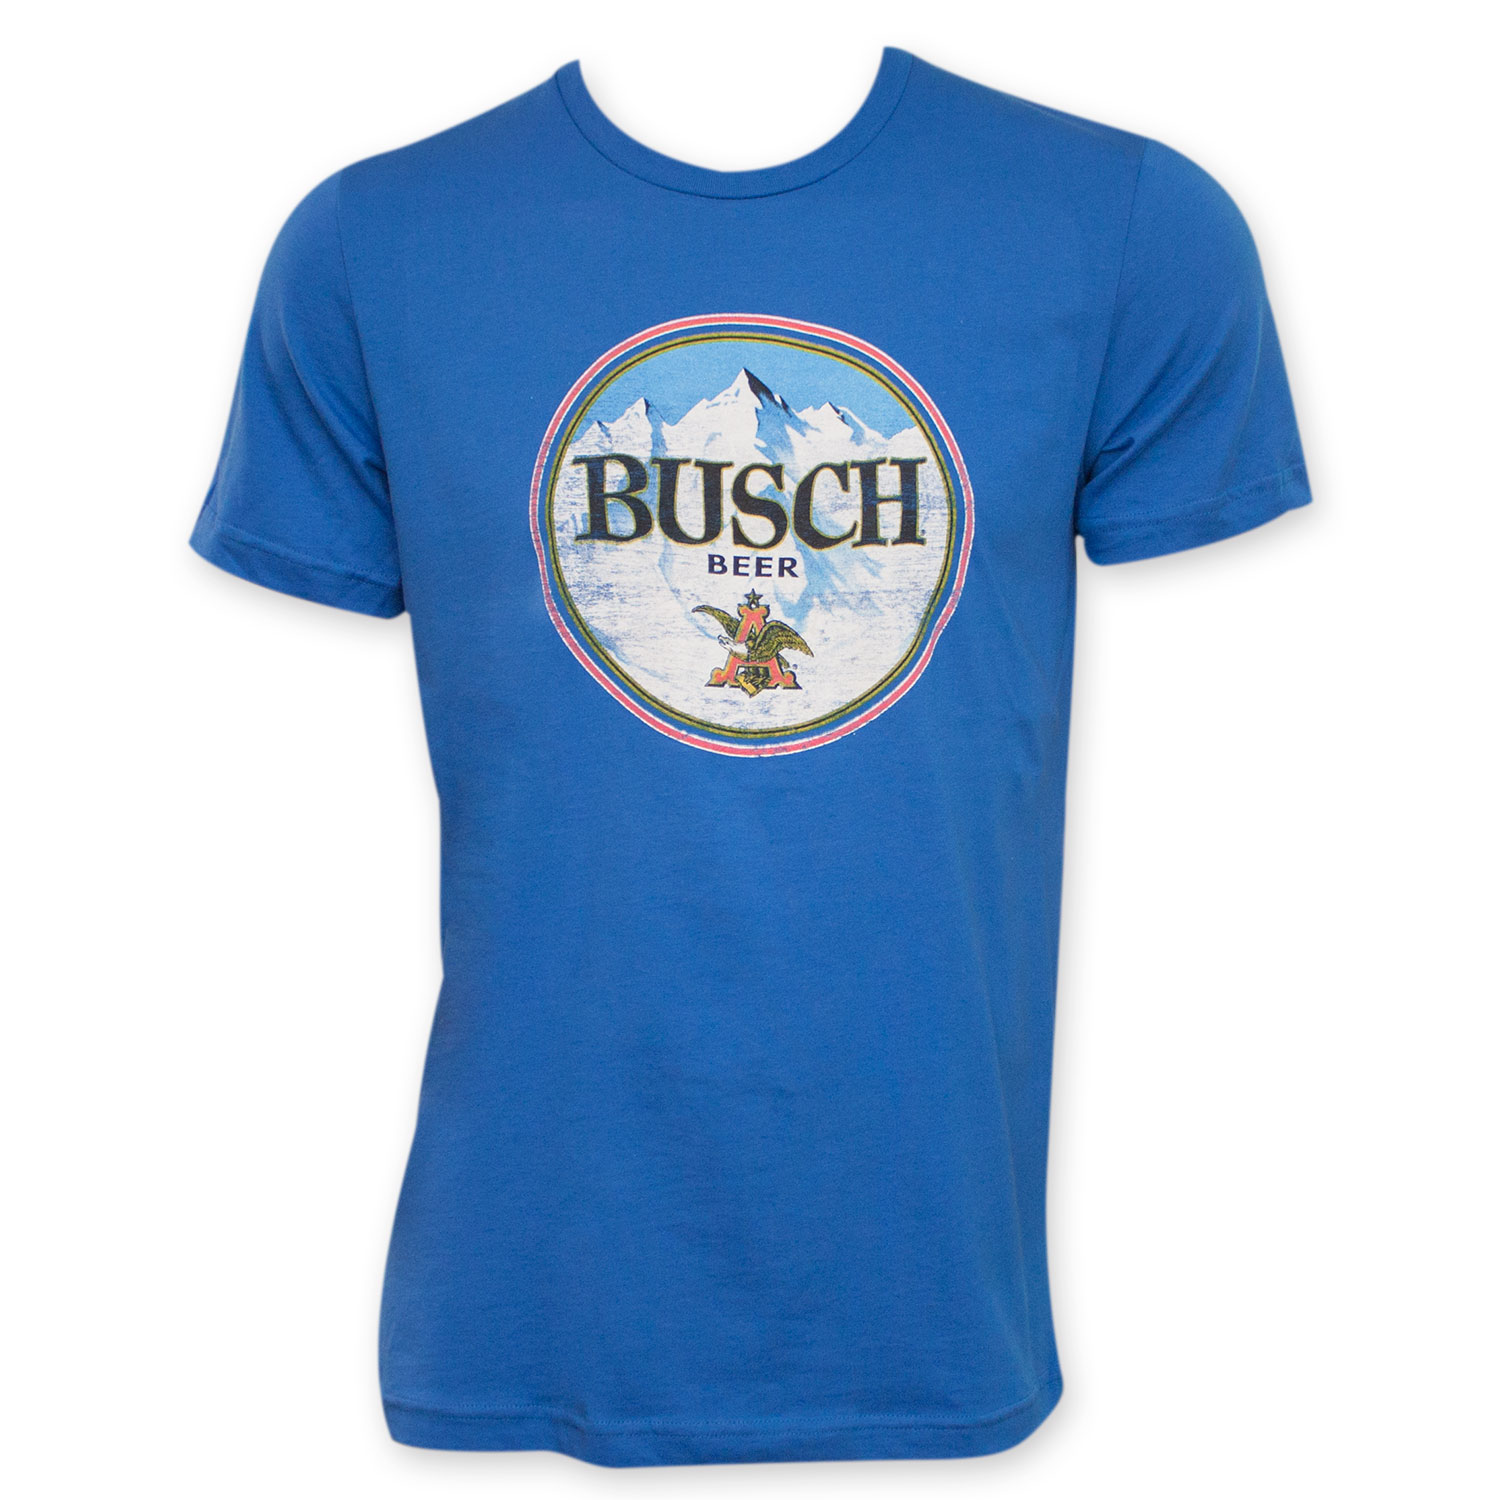 busch beer retro circle logo t shirt blue ebay. Black Bedroom Furniture Sets. Home Design Ideas